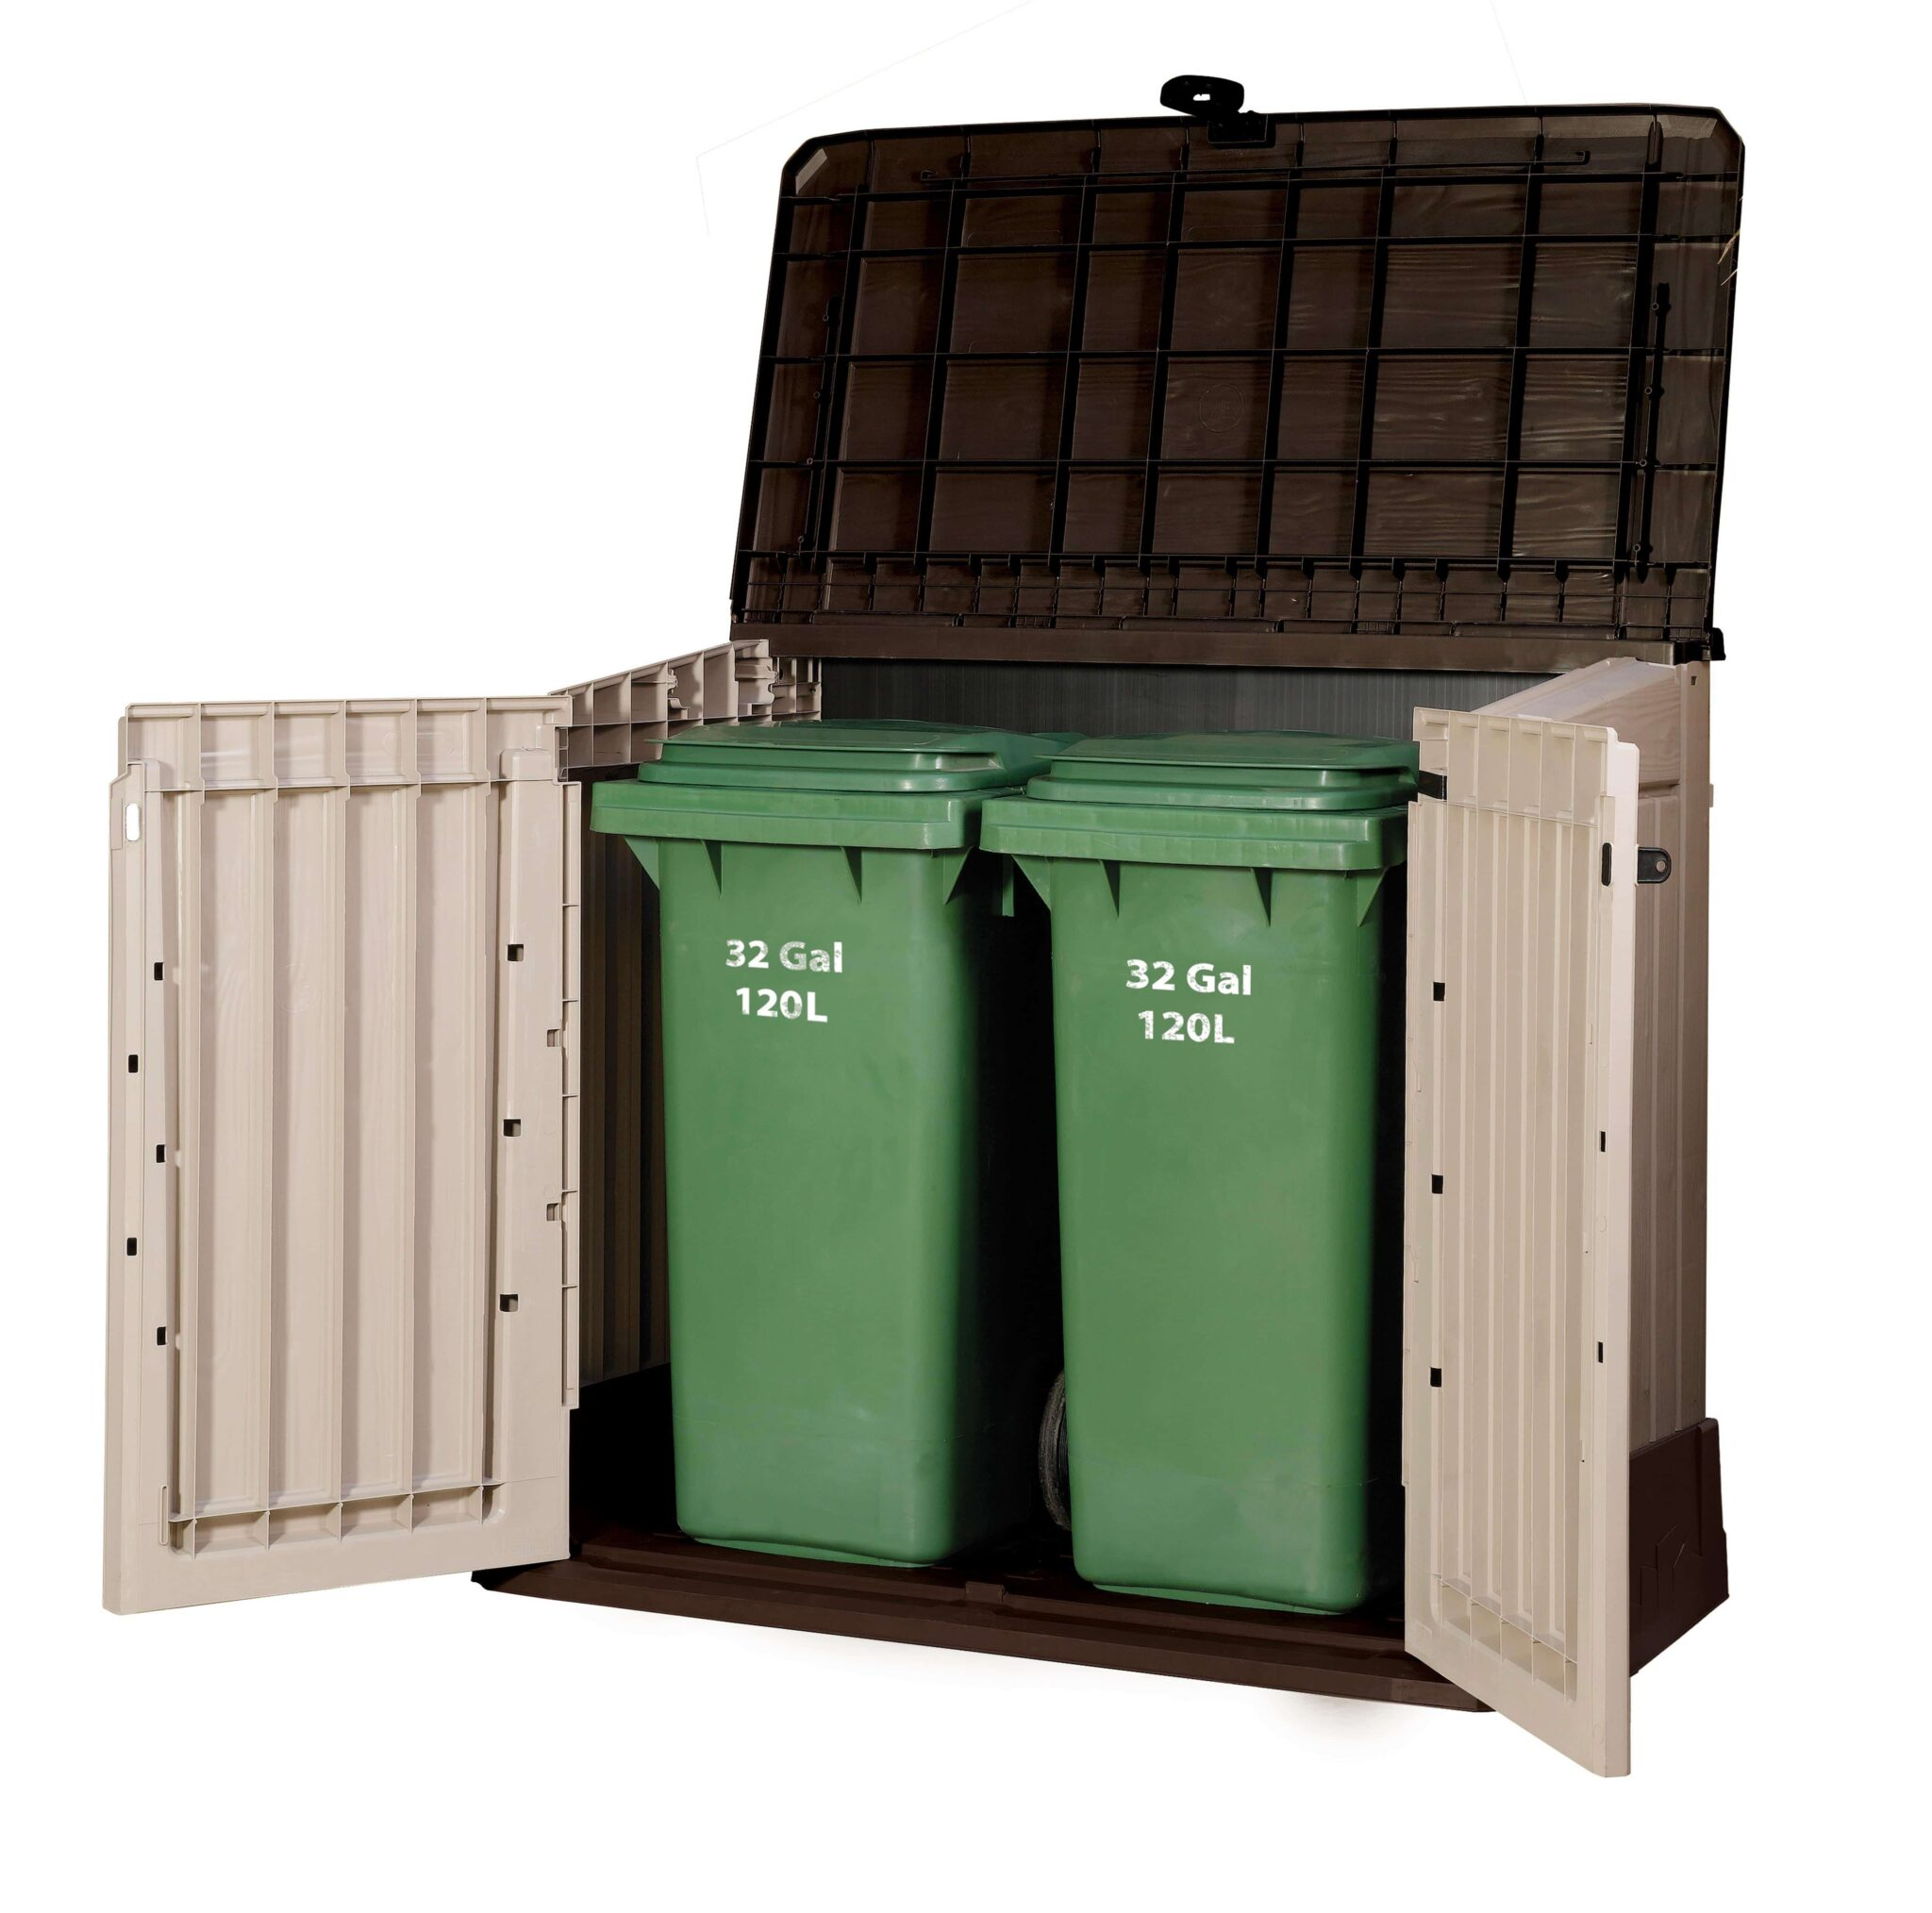 Keter Store It Out Midi Outdoor Plastic Garden Storage Box Shed-min (1)